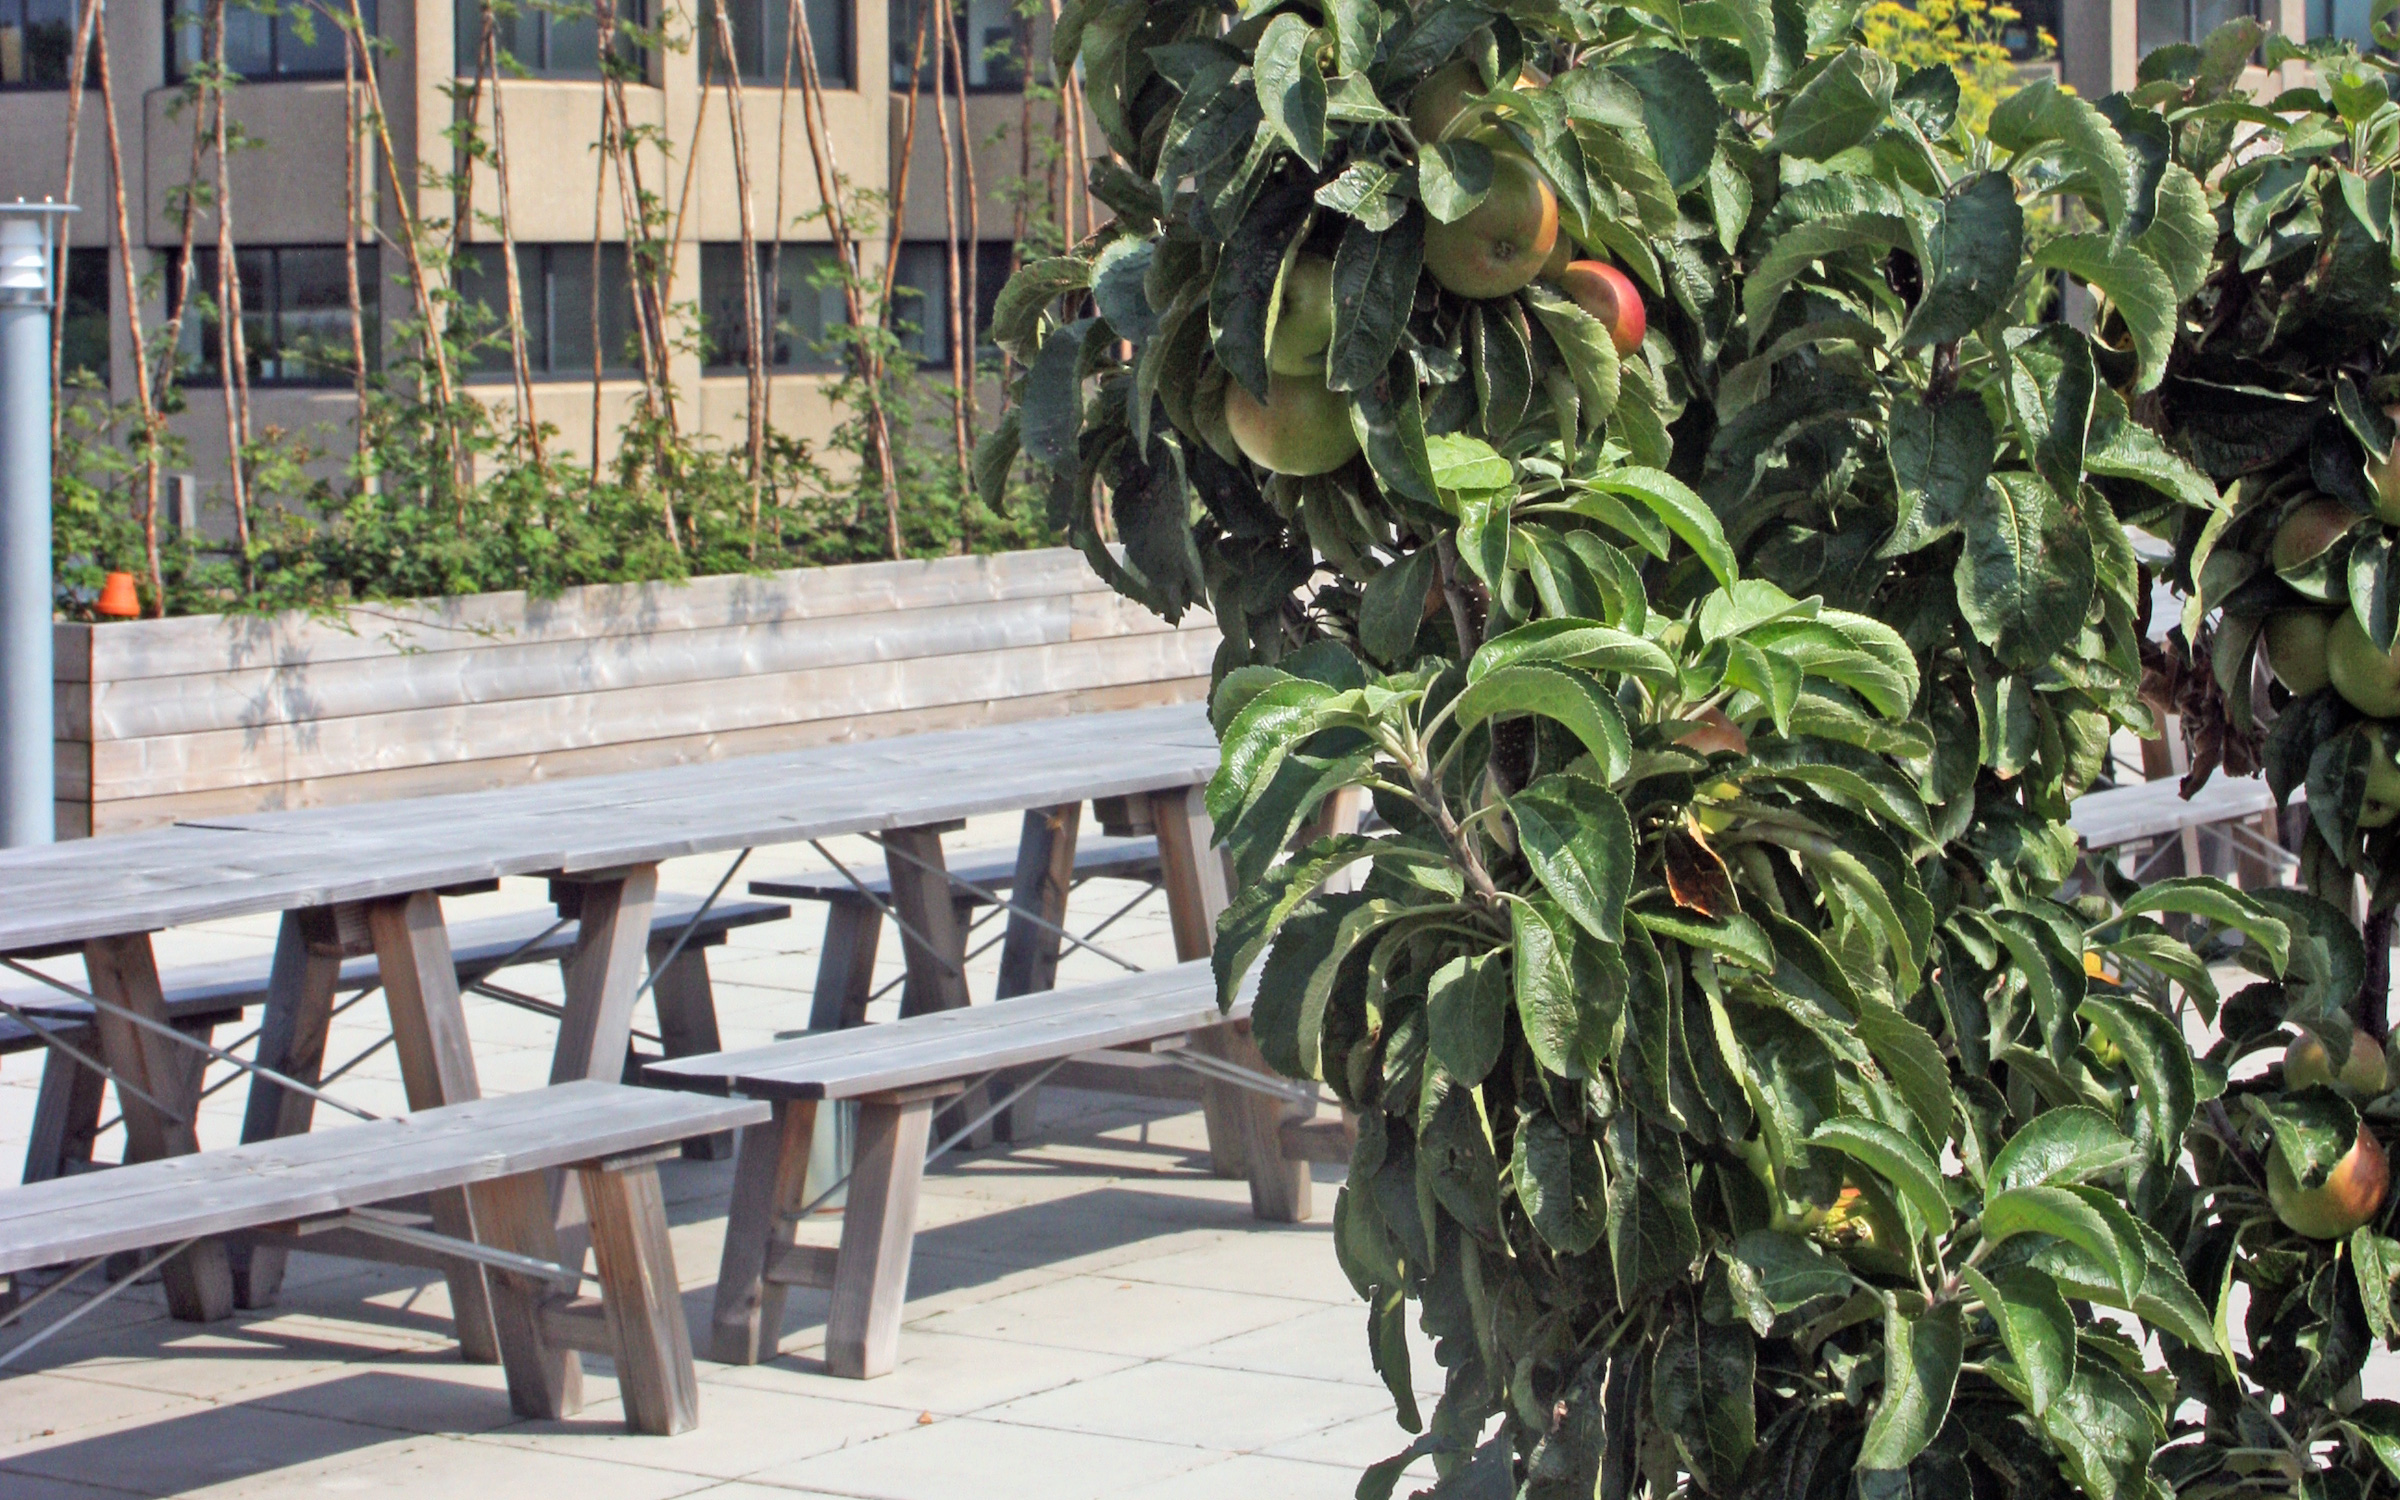 Small apple trees in front of benches and tables on a roof